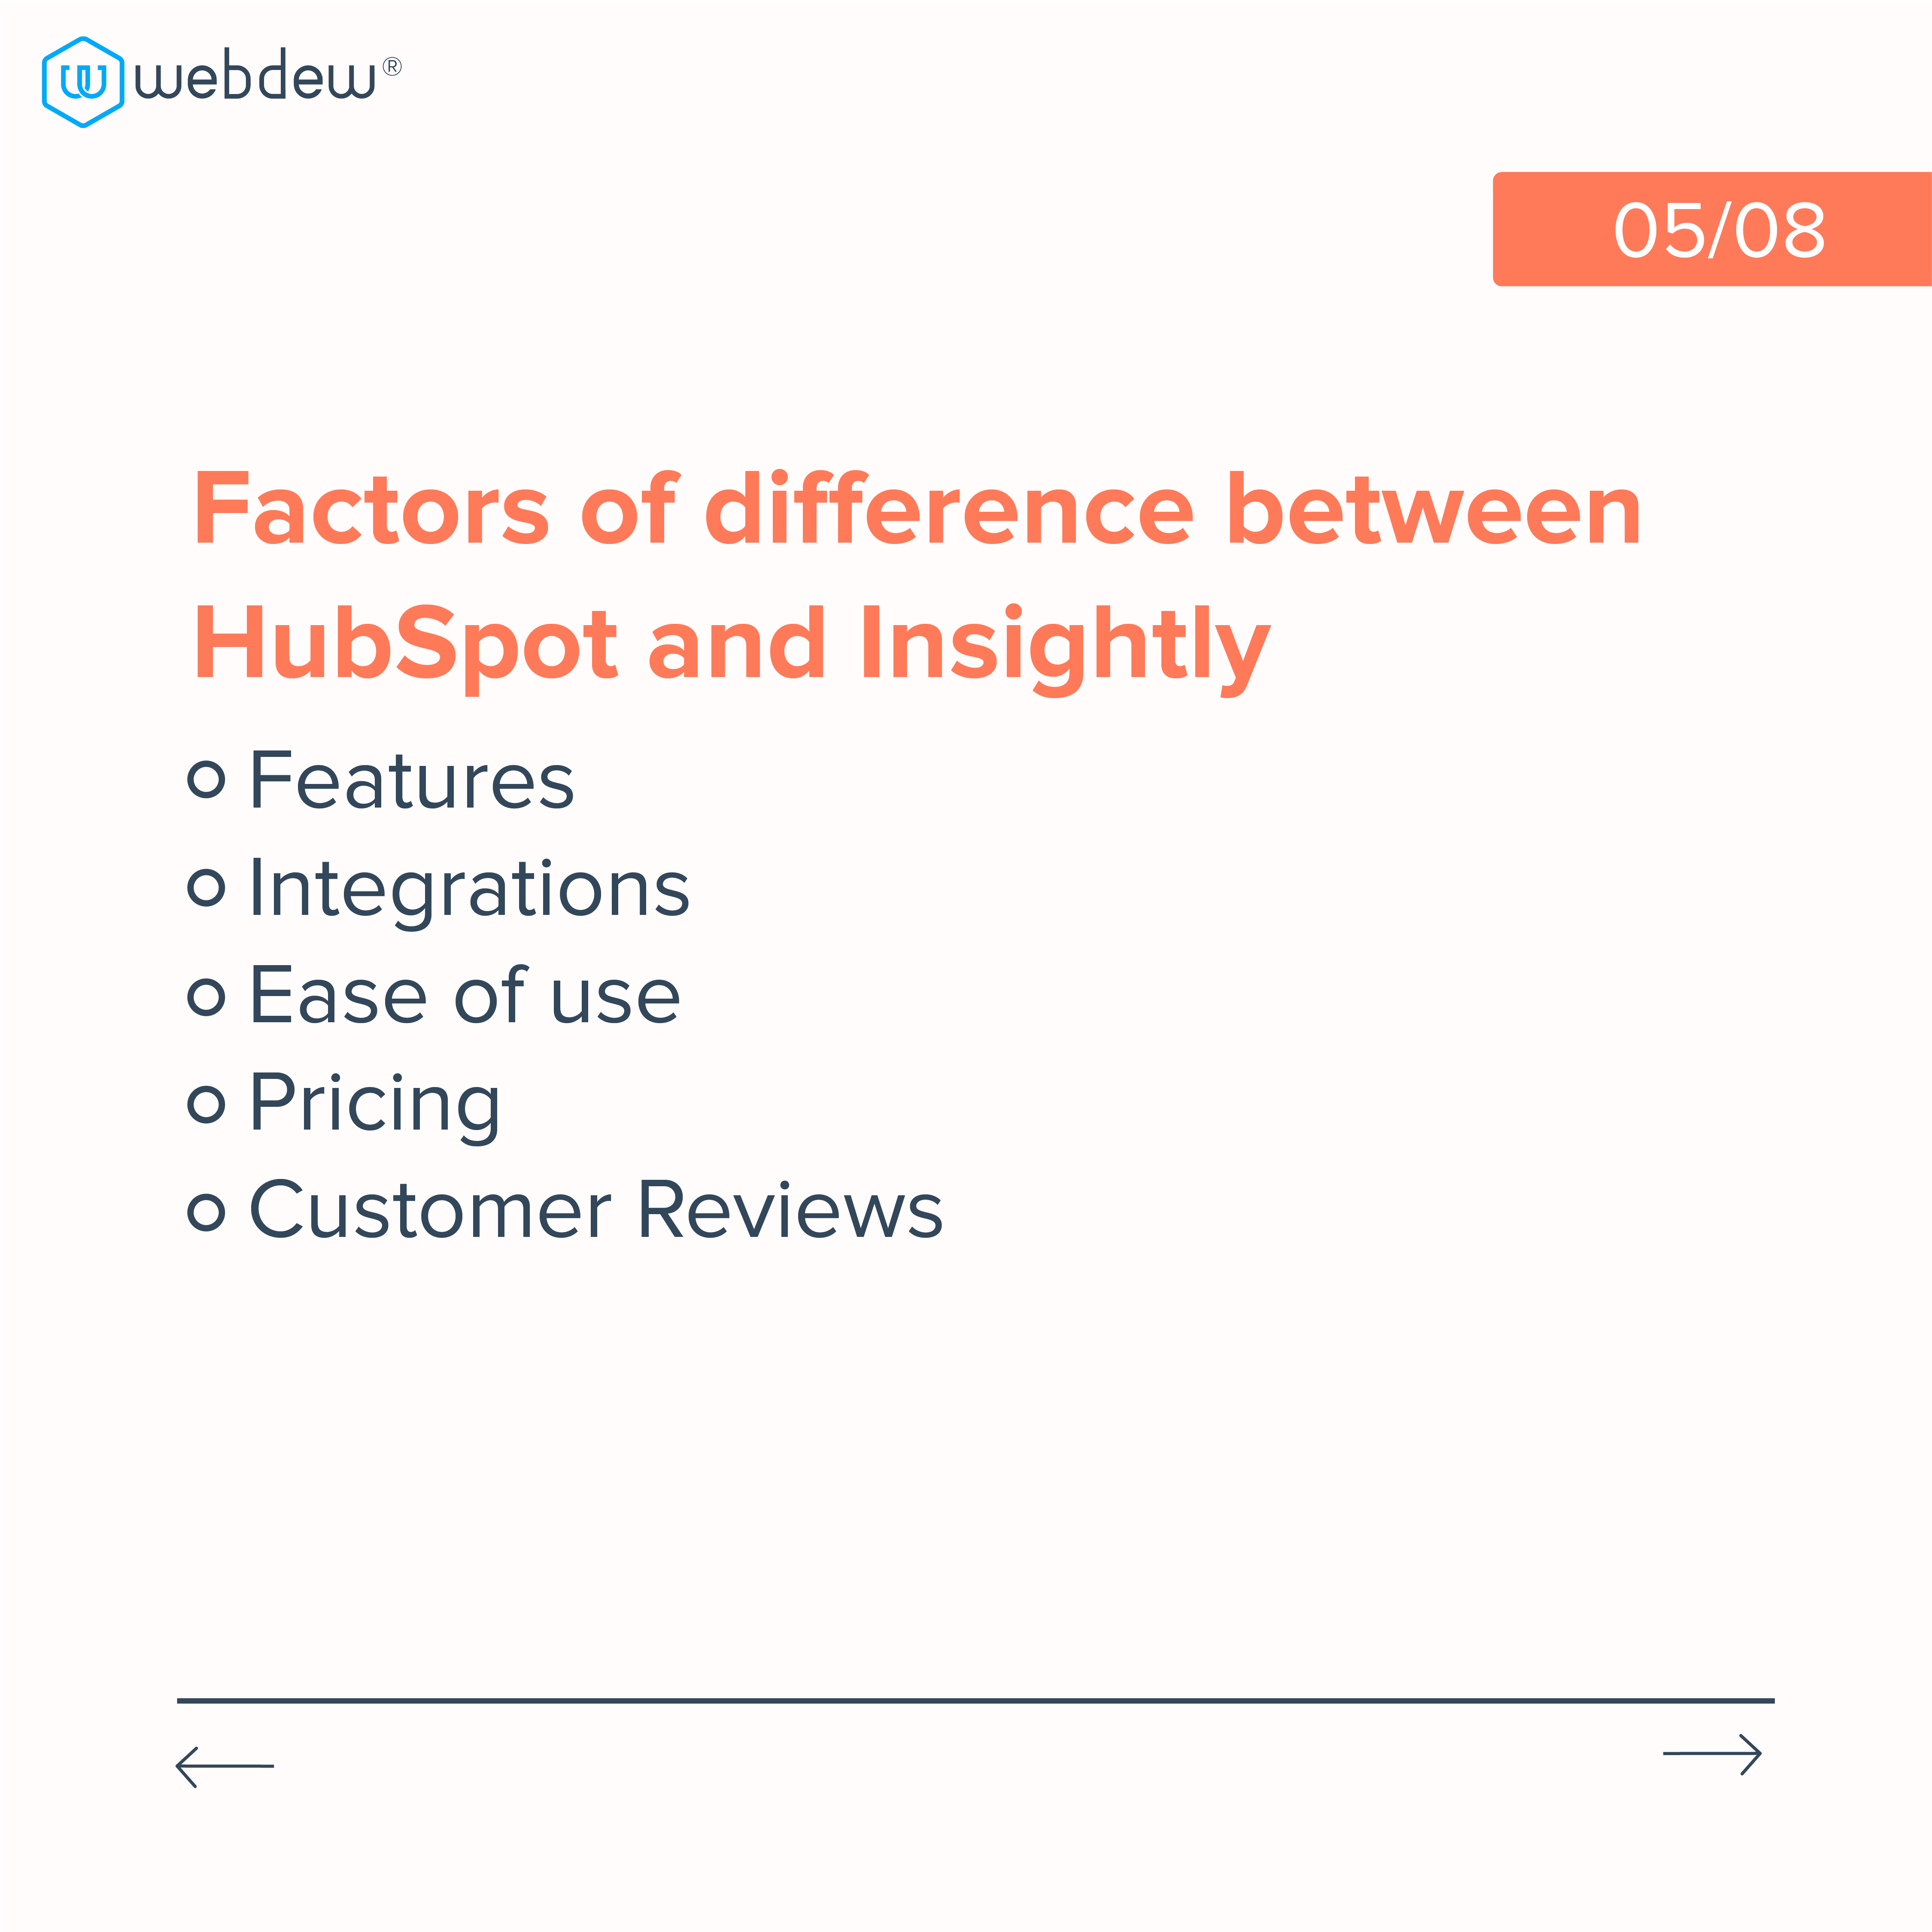 5. features of difference between hubspot and insightly